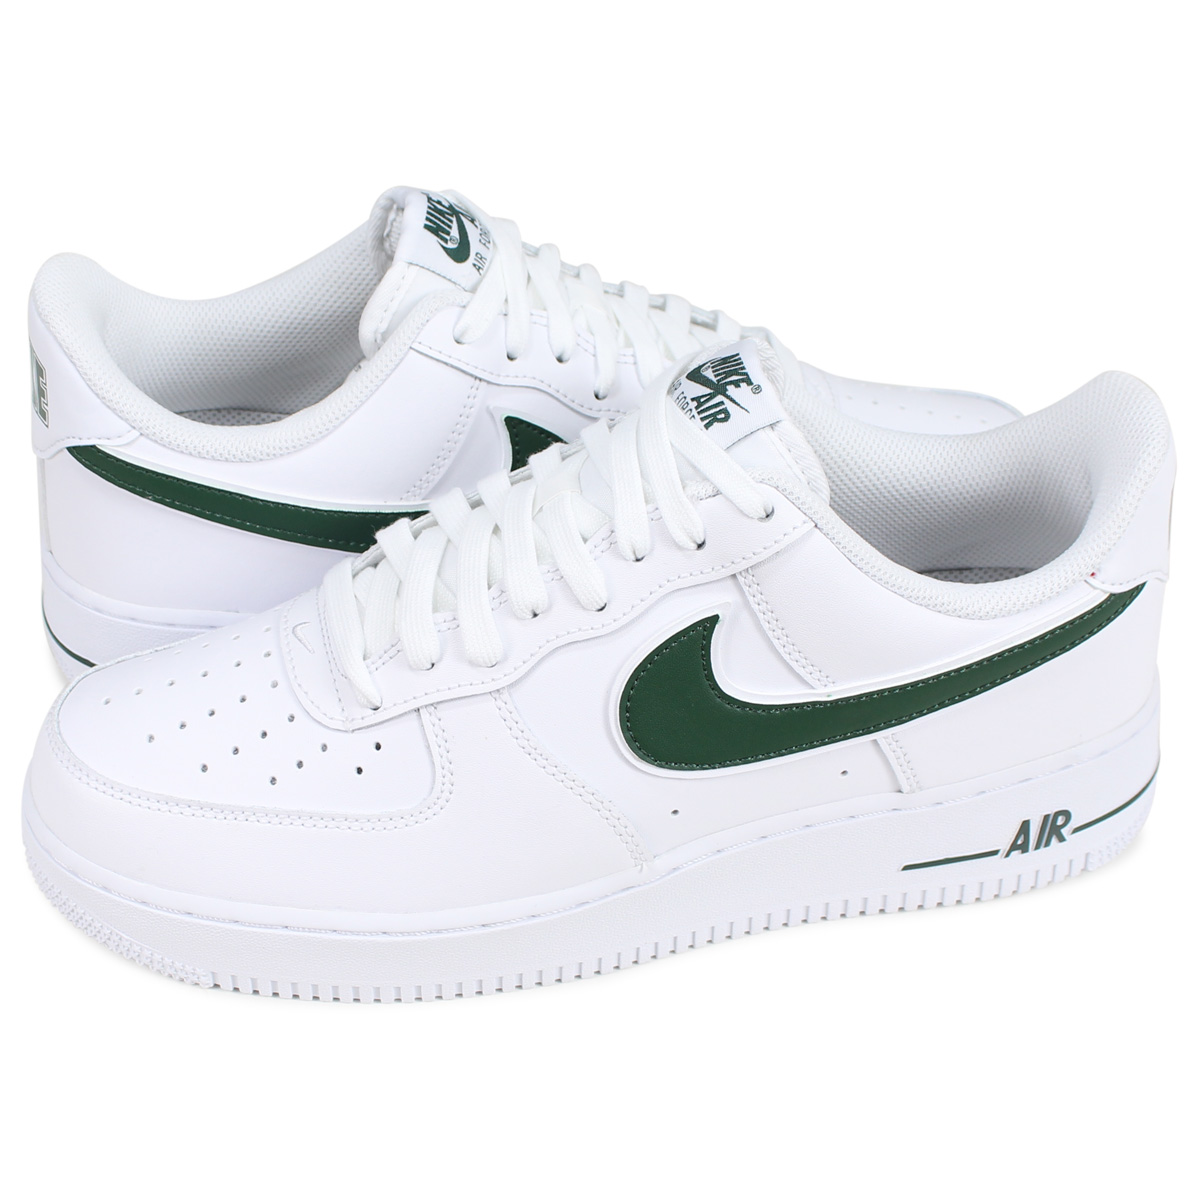 new style bc482 0e373 Nike NIKE air force 1 sneakers men AIR FORCE 1 07 3 white white AO2423- ...